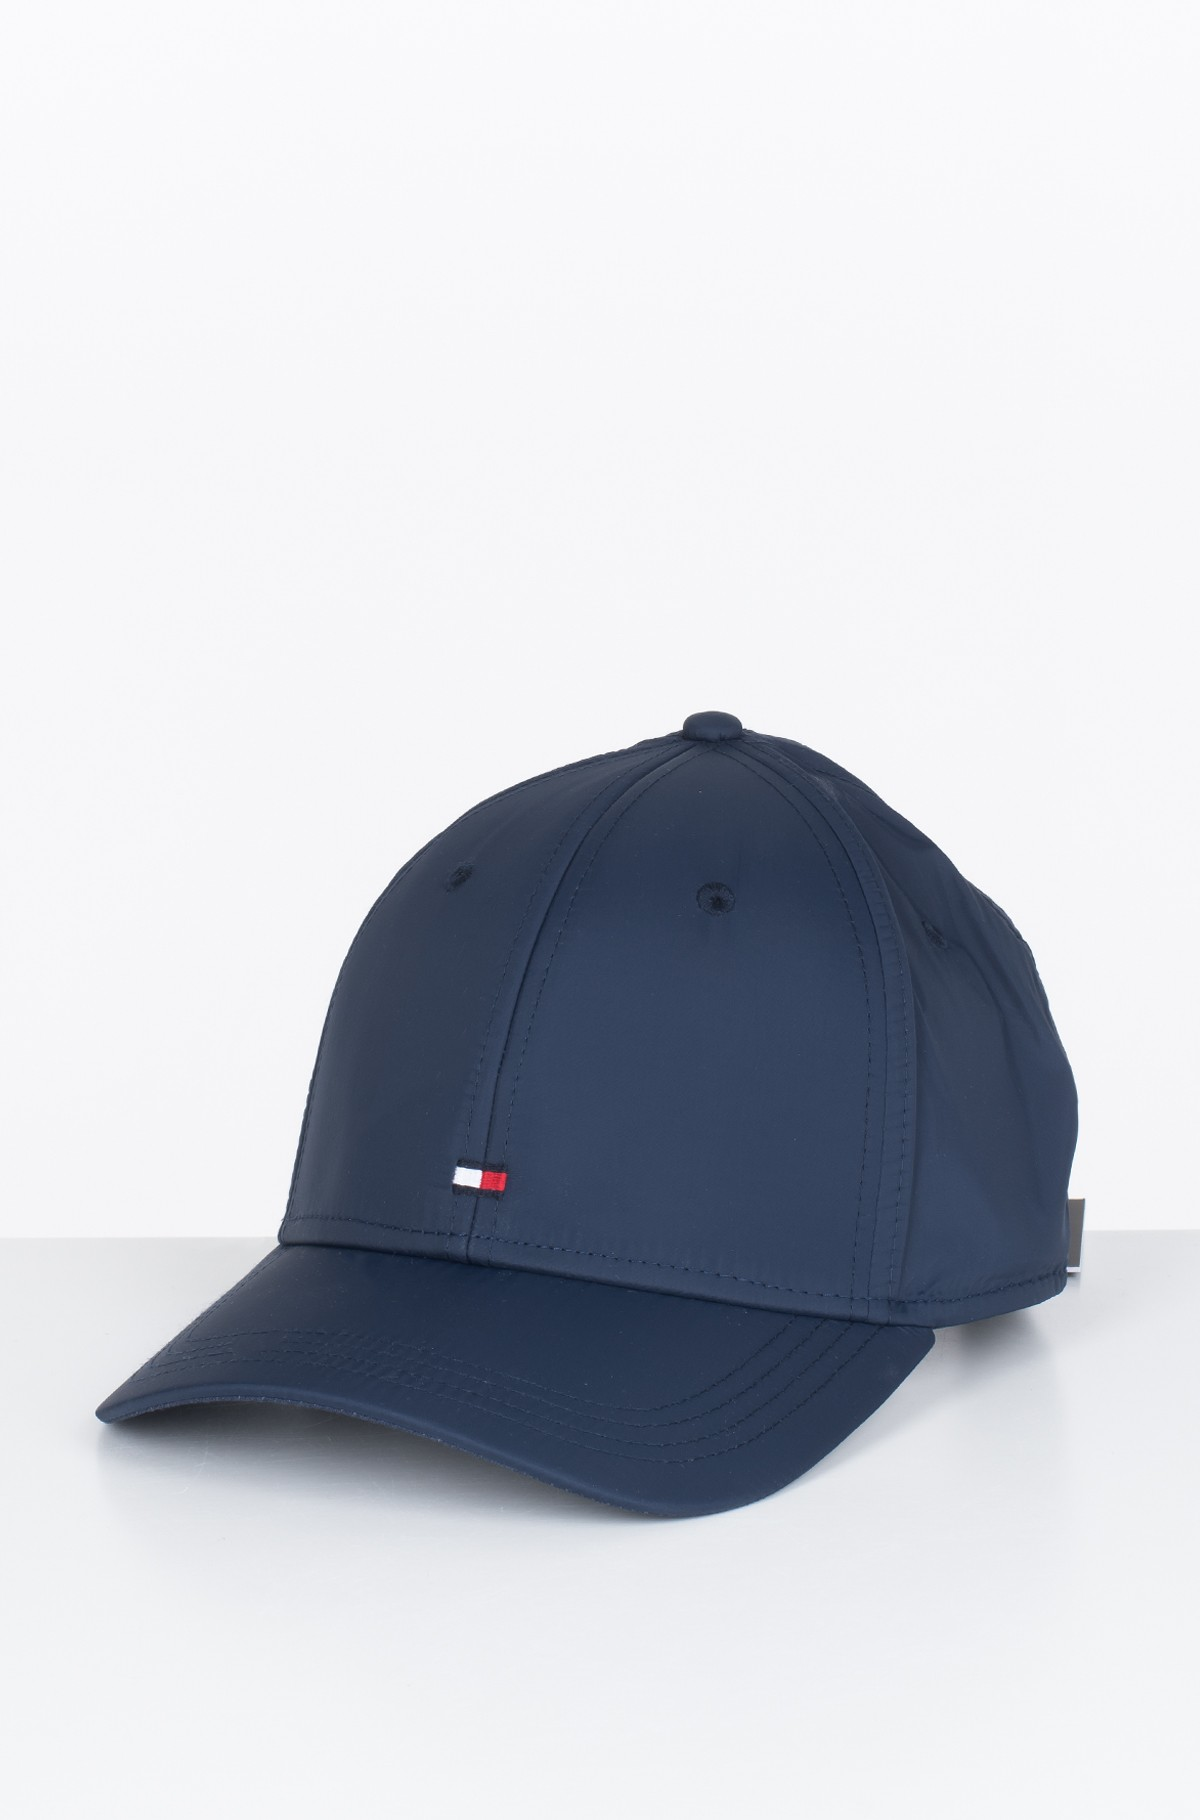 Kepurė su snapeliu  BB CAP TAILORED - RECYCLED NYLON	-full-1